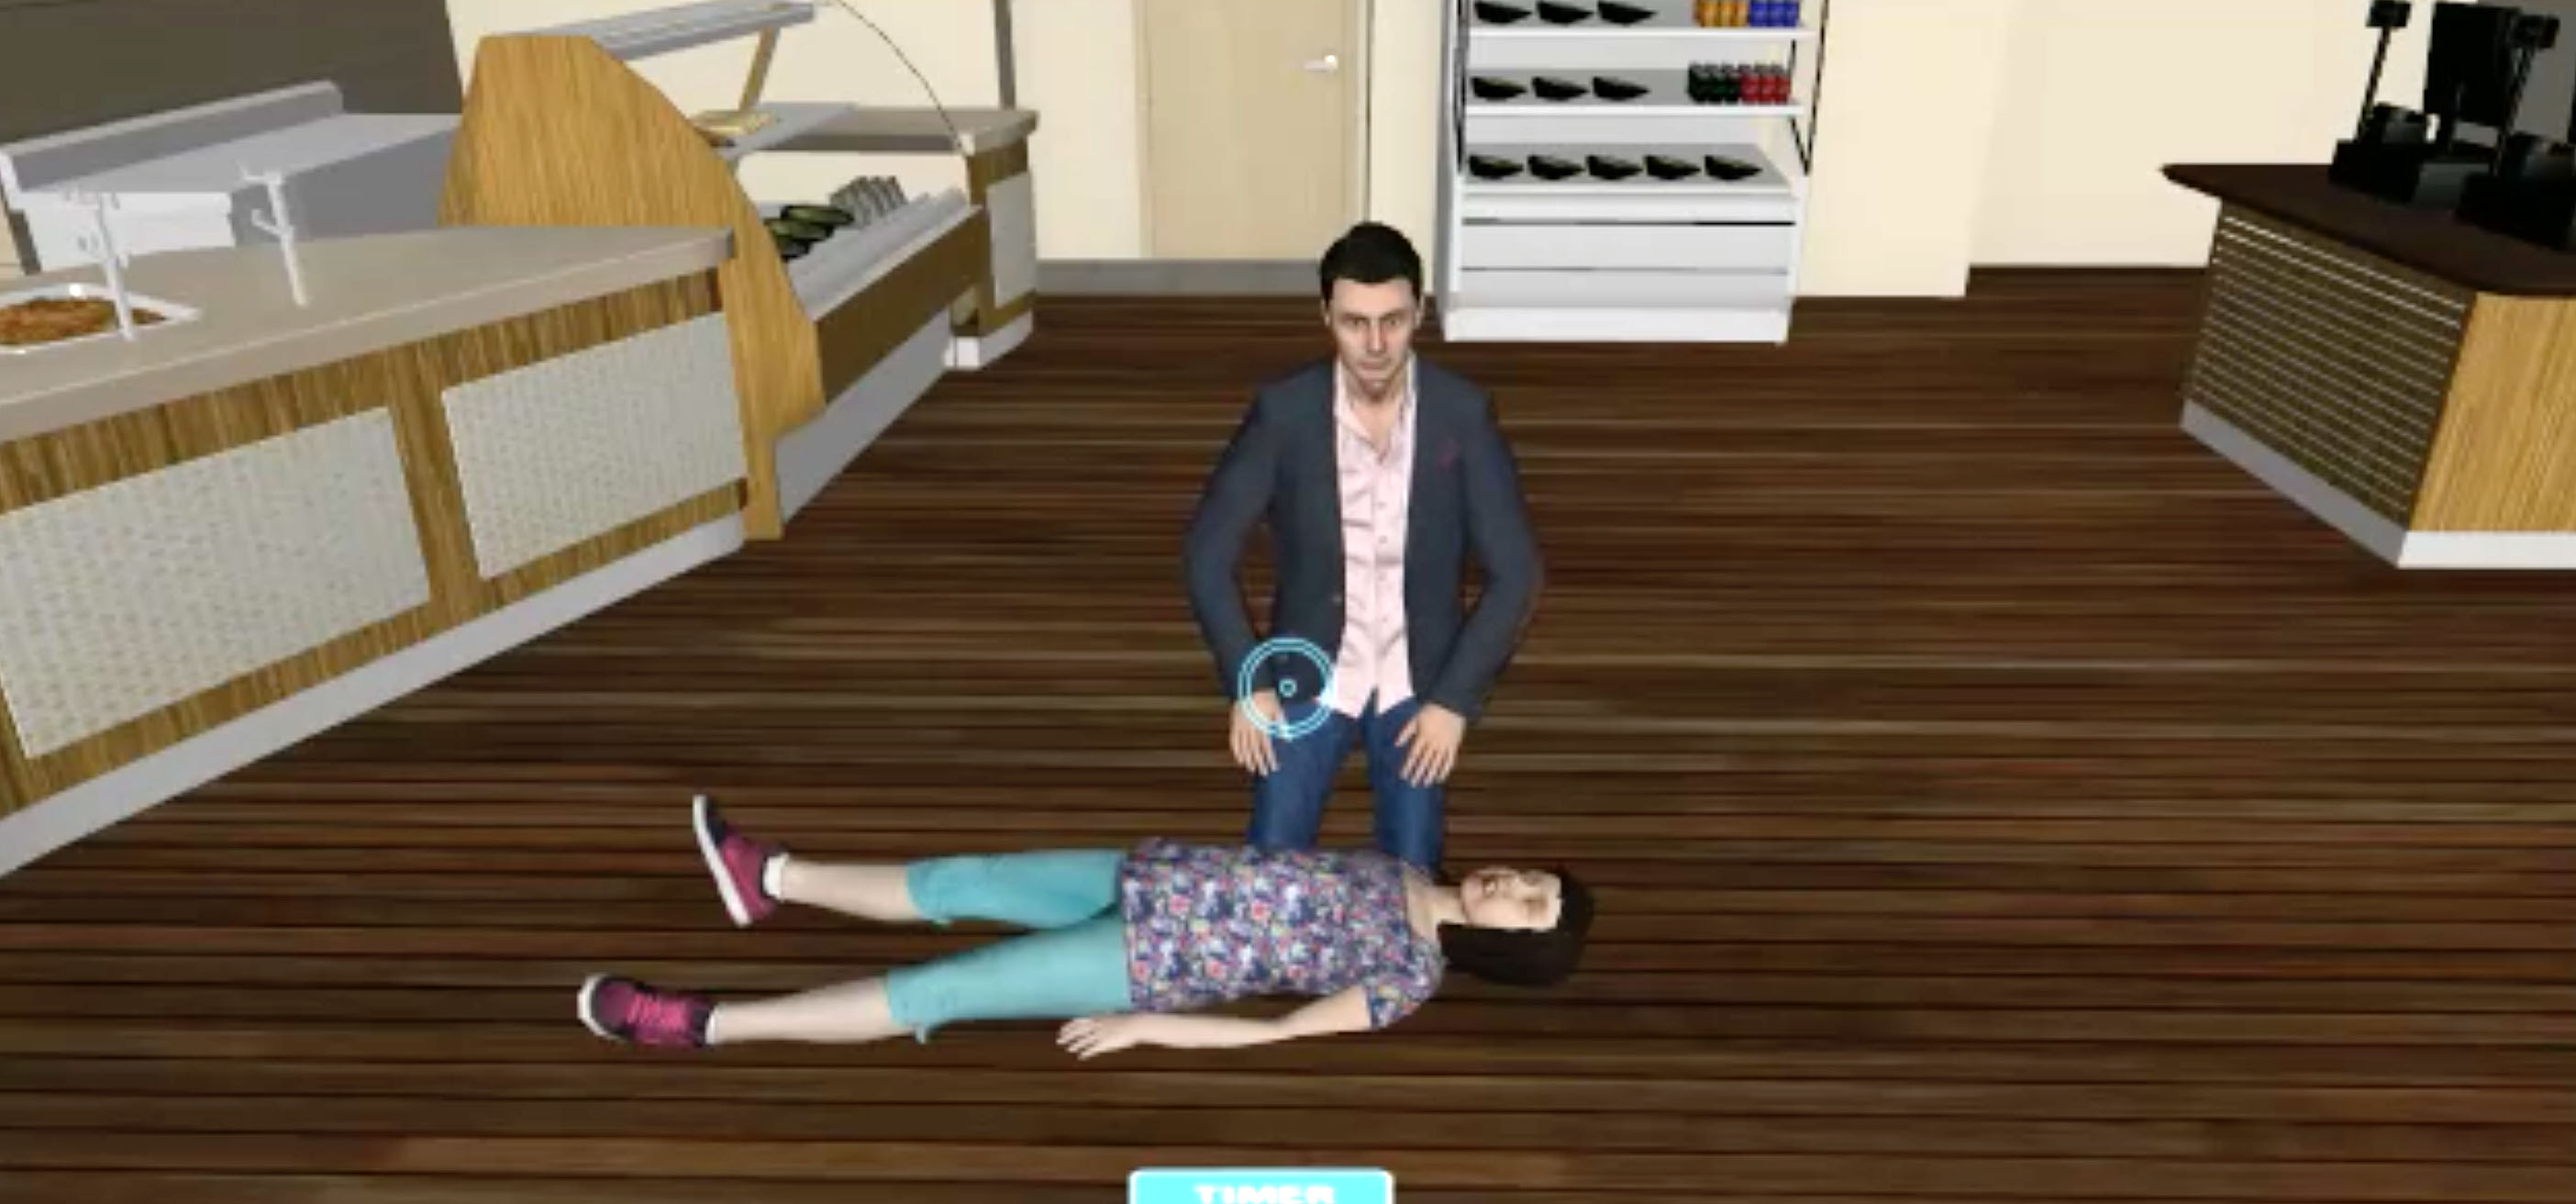 Hospitals and soon consumers will be able to use mobile VR to learn CPR.